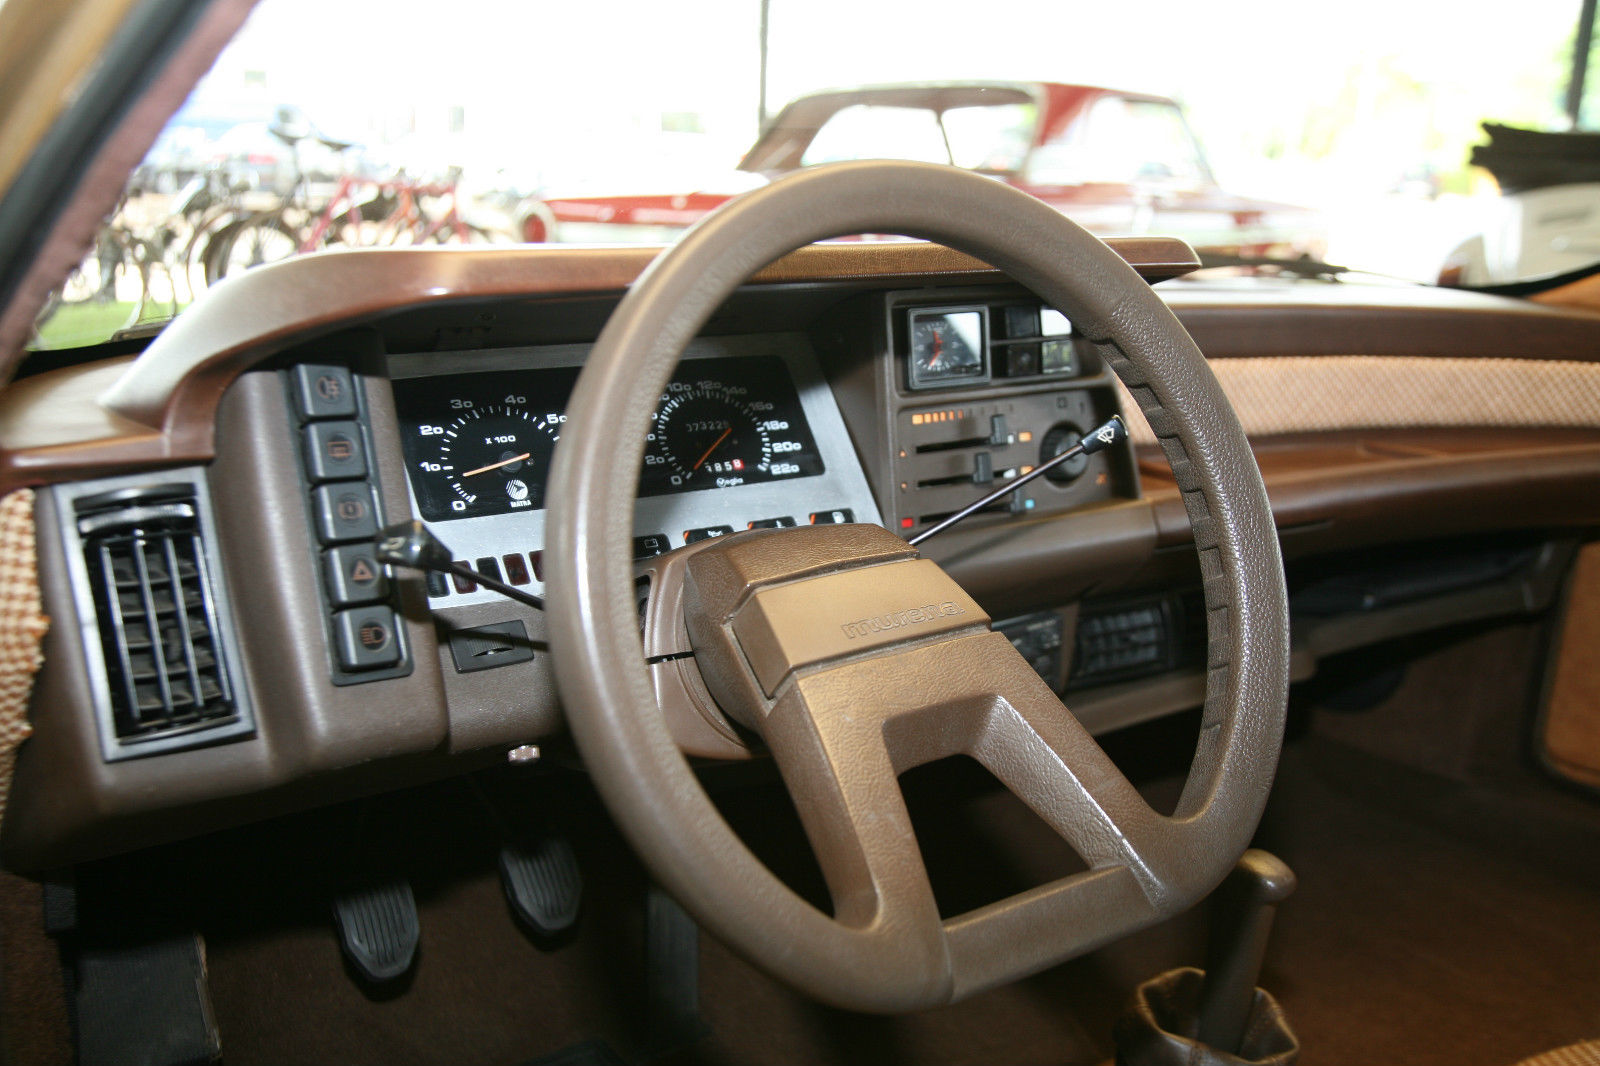 The almost Citroën style steering wheel keeps the driver's view of the instrument panel unobstructed whilst adding to the unusual look of the interior.